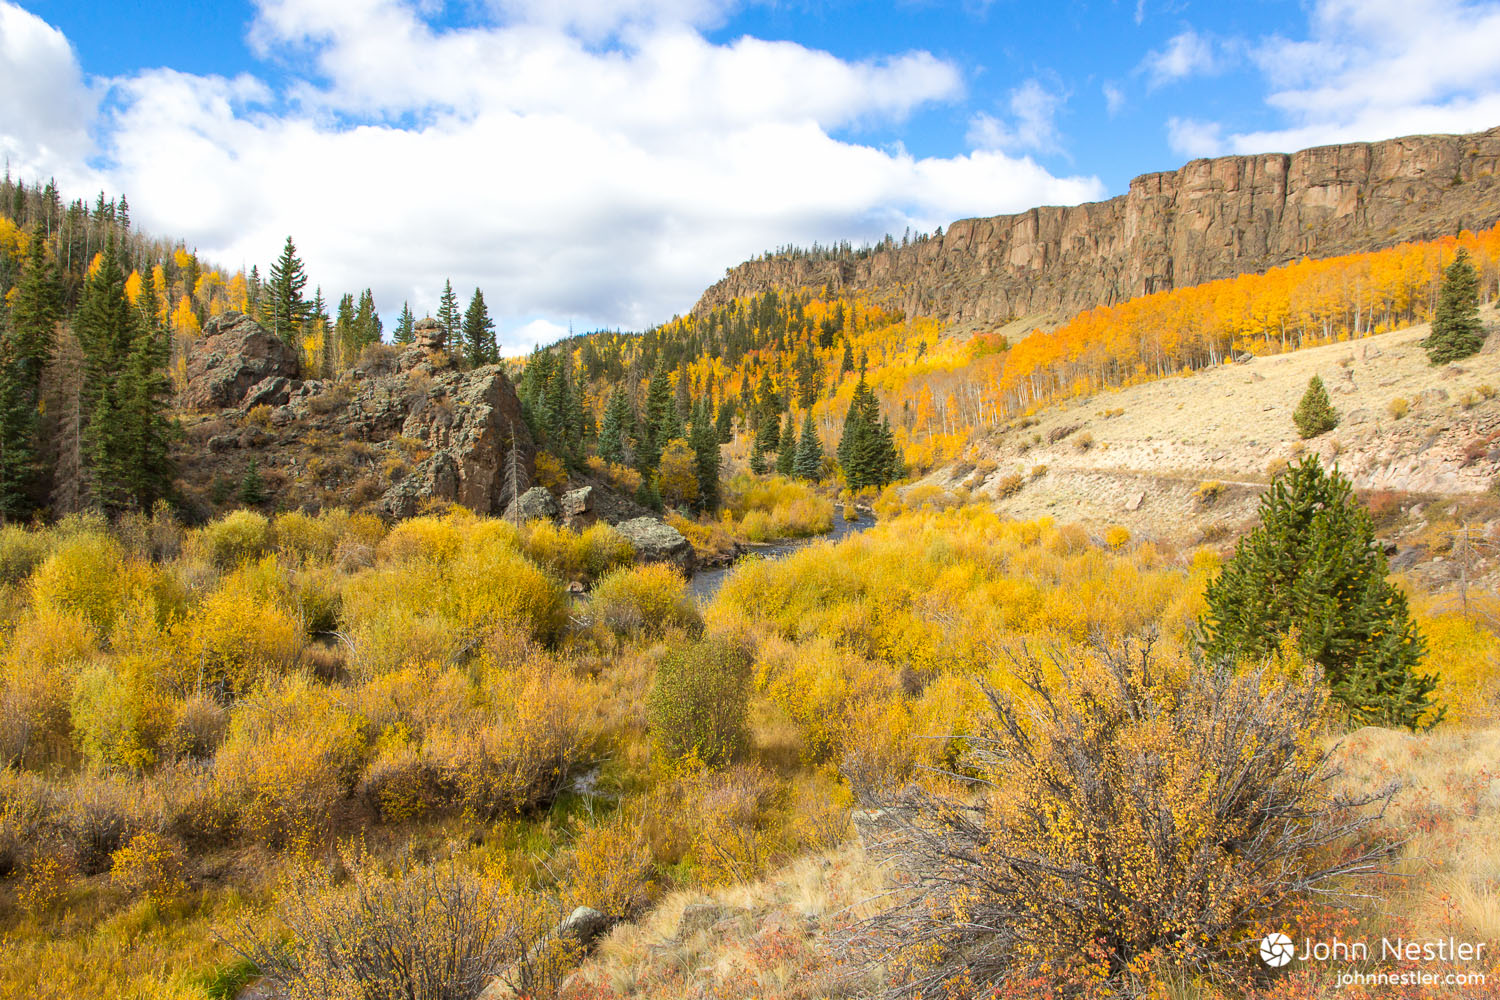 The ride along Cebolla Creek just kept getting prettier. Here's a shot near the top with a breathtaking mix of fall colors. Shot on the La Garita Wilderness detour.